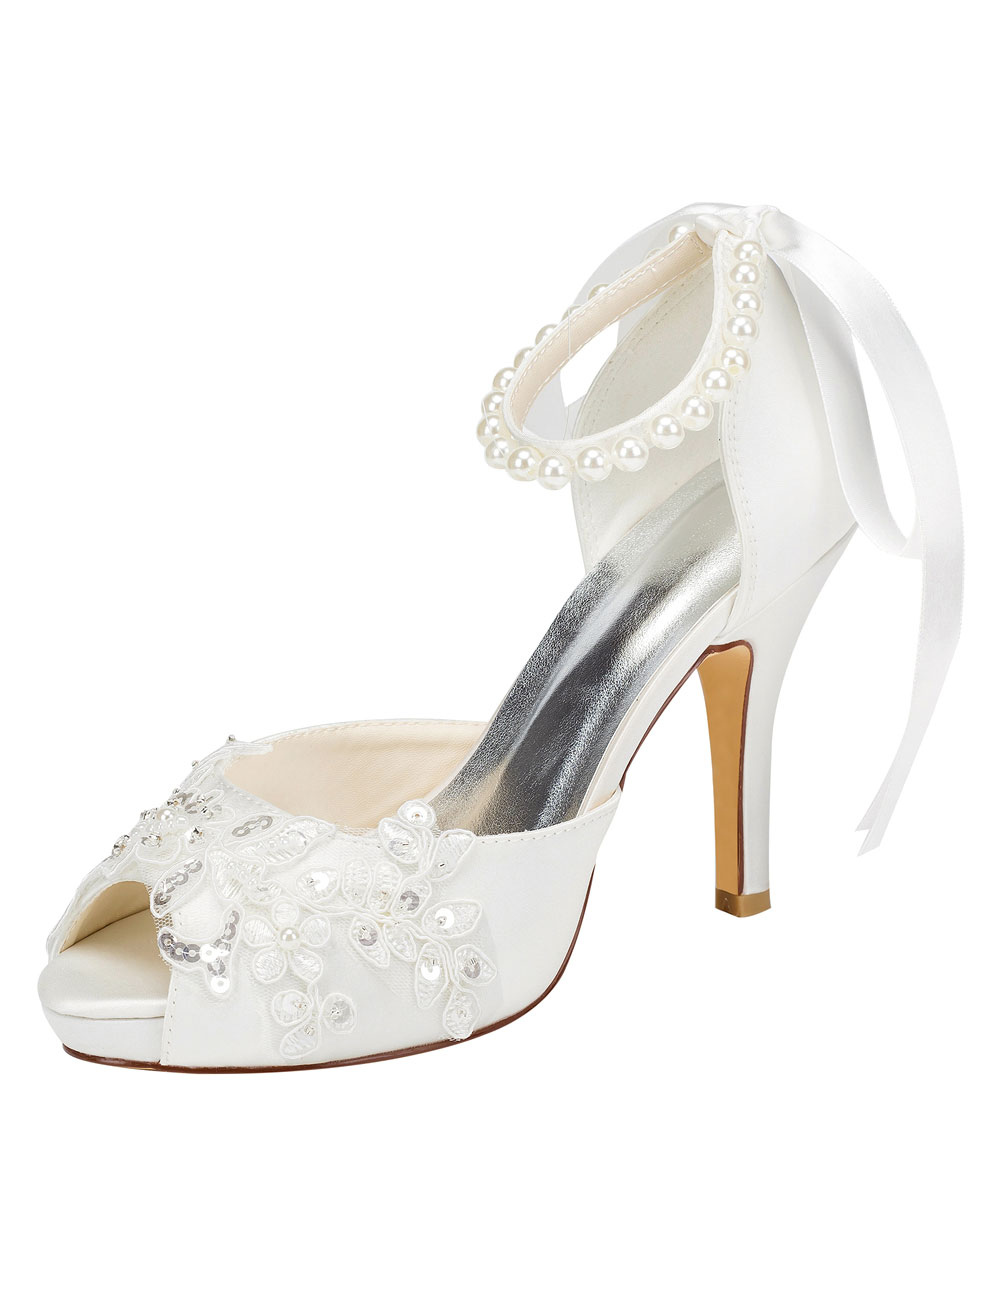 Peep Wedding Shoes High Heel Ivory Ankle Strap Pearl Sequined Bridal Shoes With Ribbon Bow